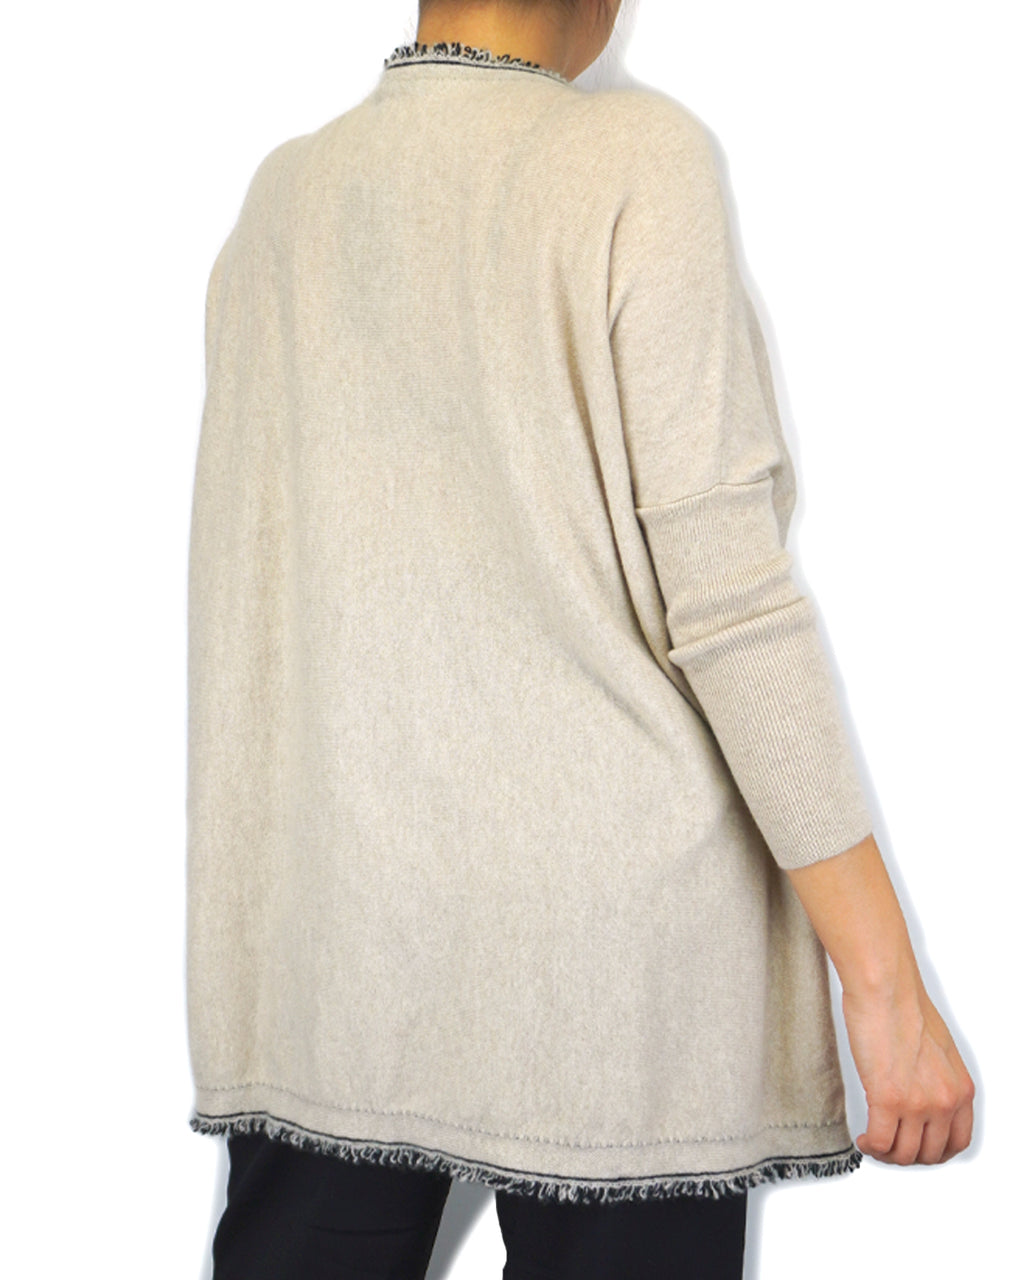 Round-neck Free Size Cashmere Sweater